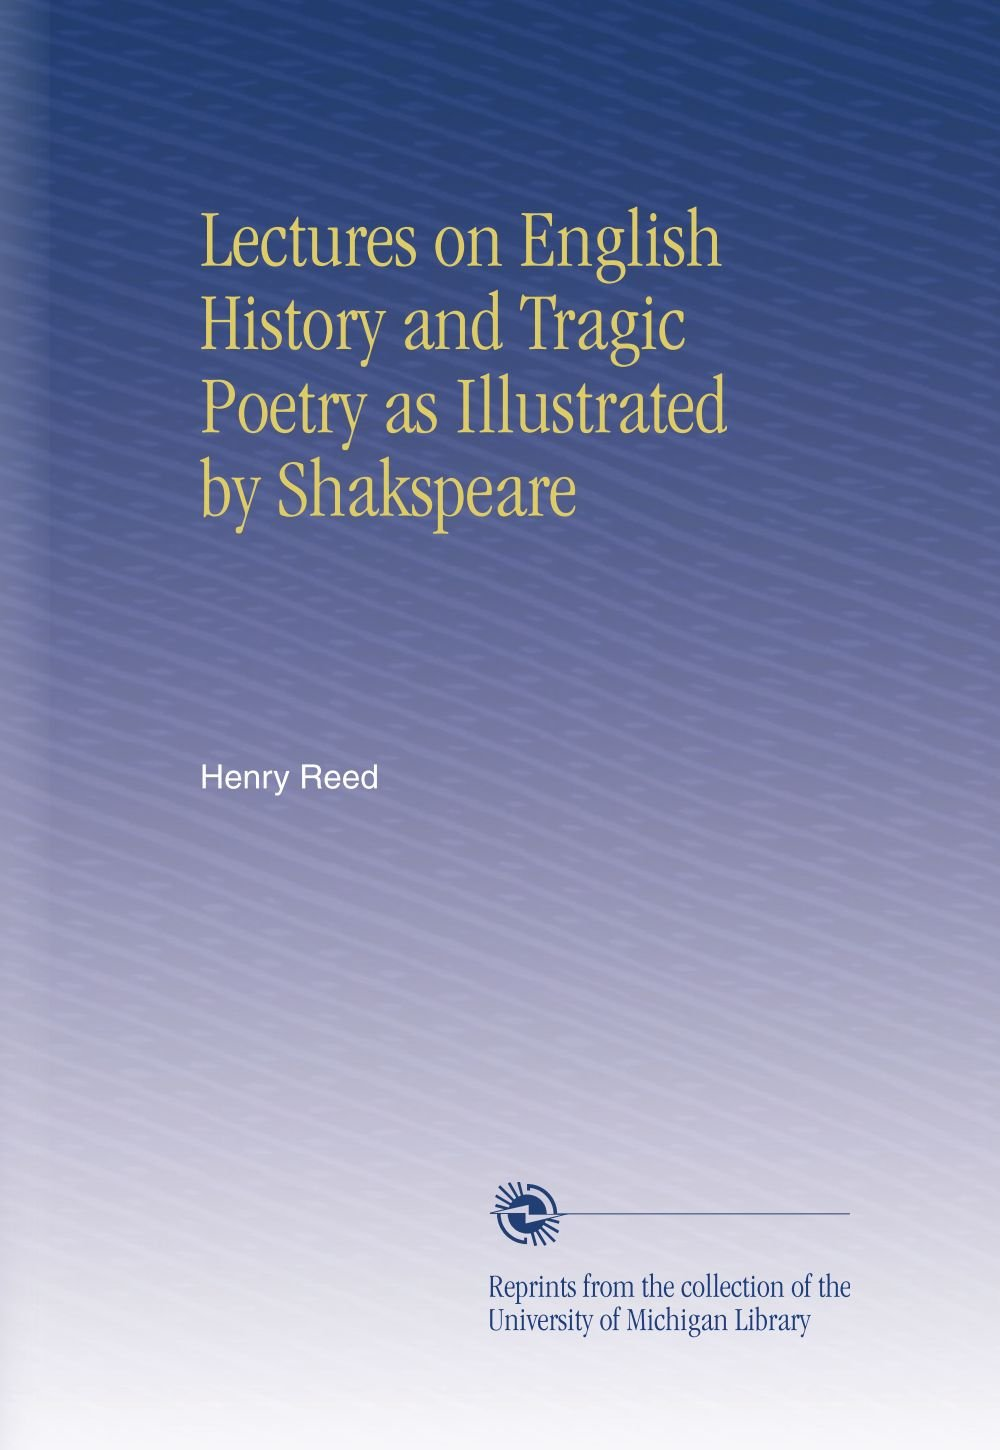 Lectures on English History and Tragic Poetry as Illustrated by Shakspeare PDF